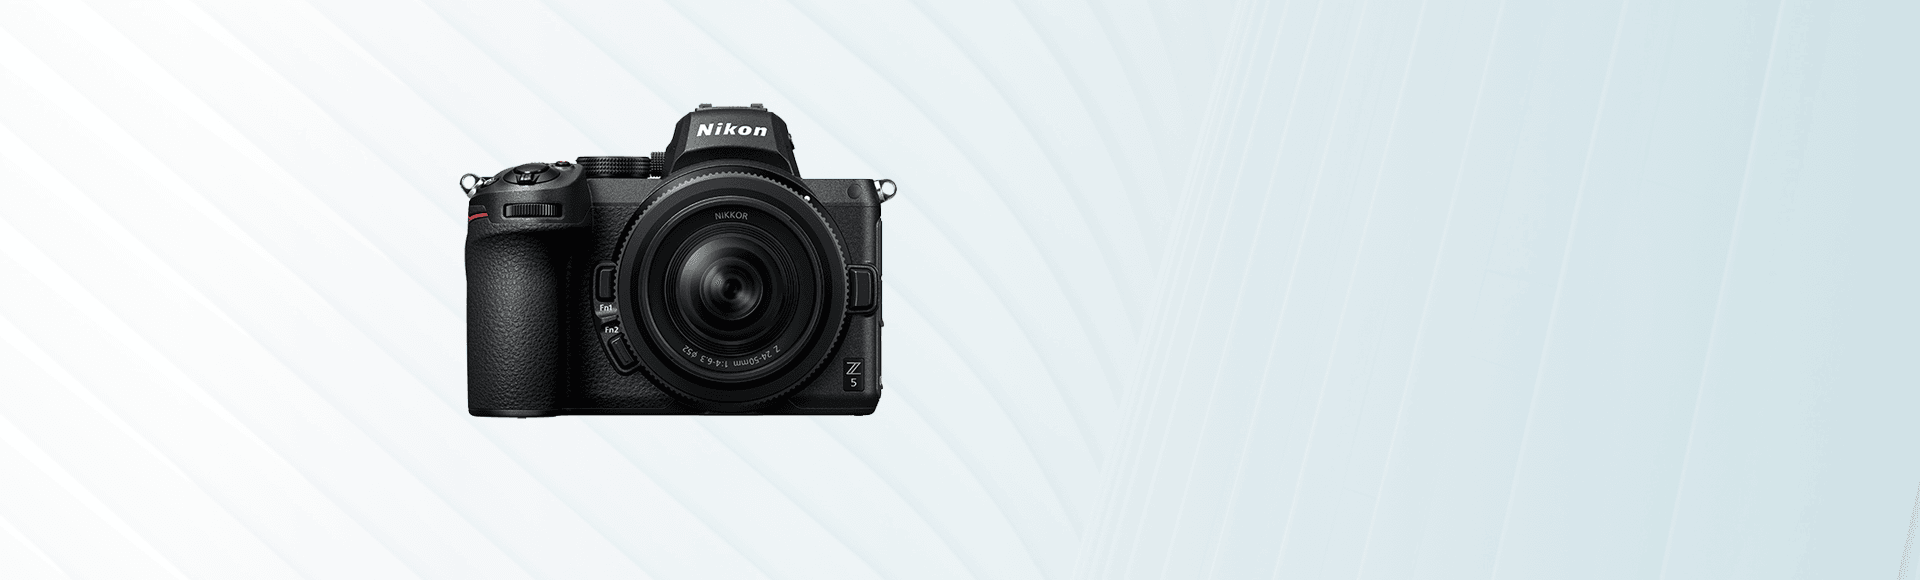 Introducing The New Nikon Z 5